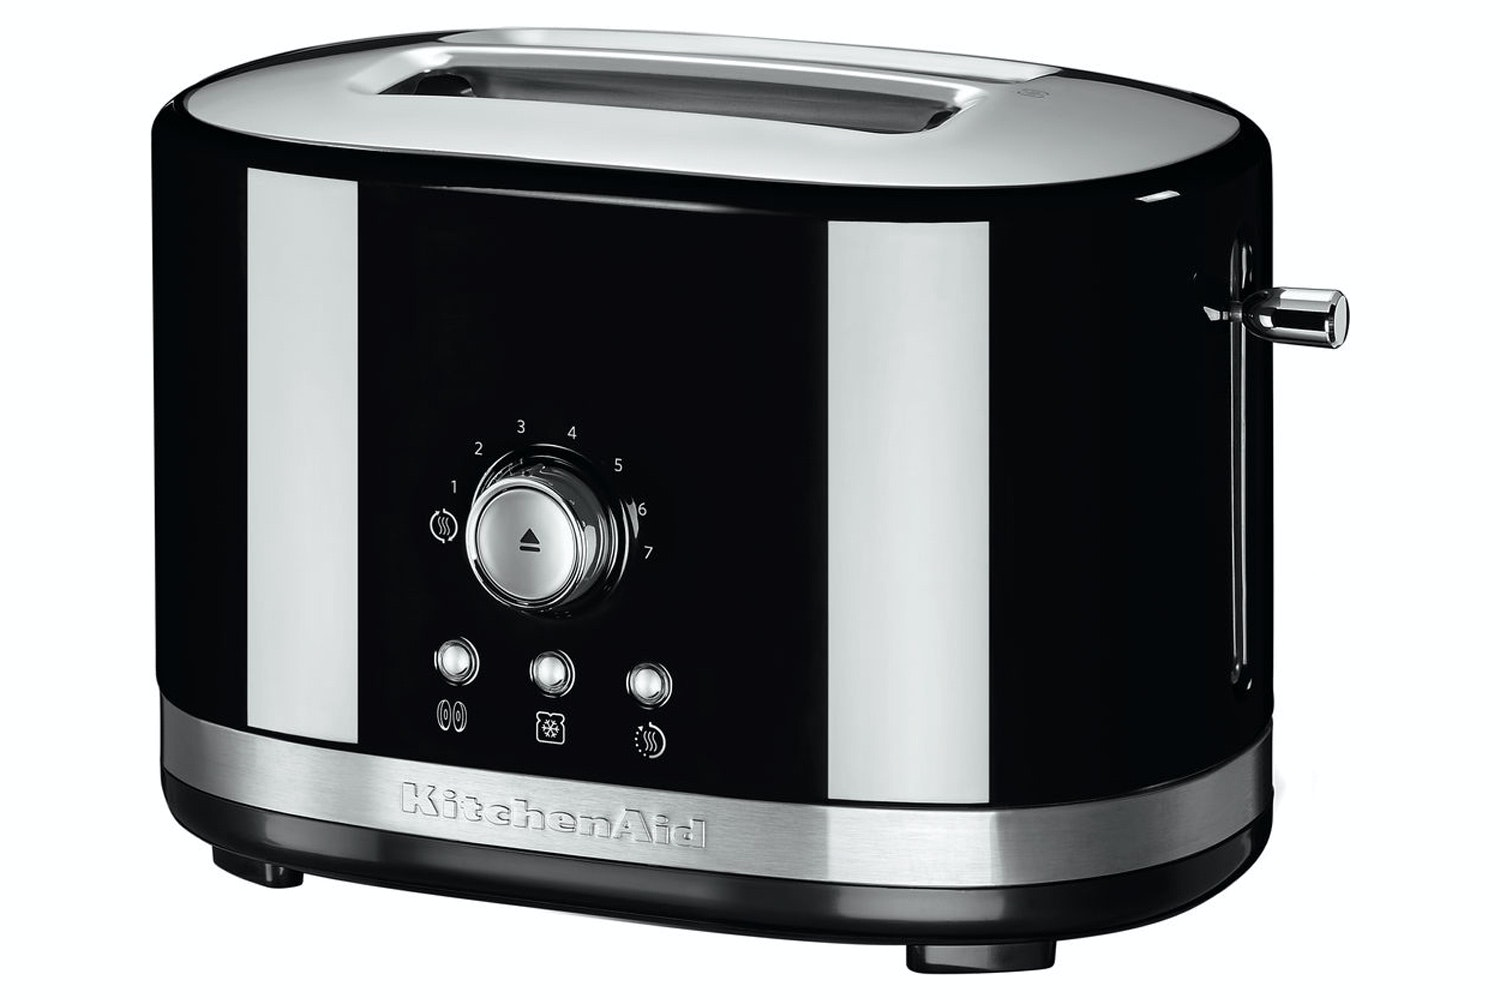 Kitchenaid 2 Slot Manual Toaster | 5KMT2116BOB